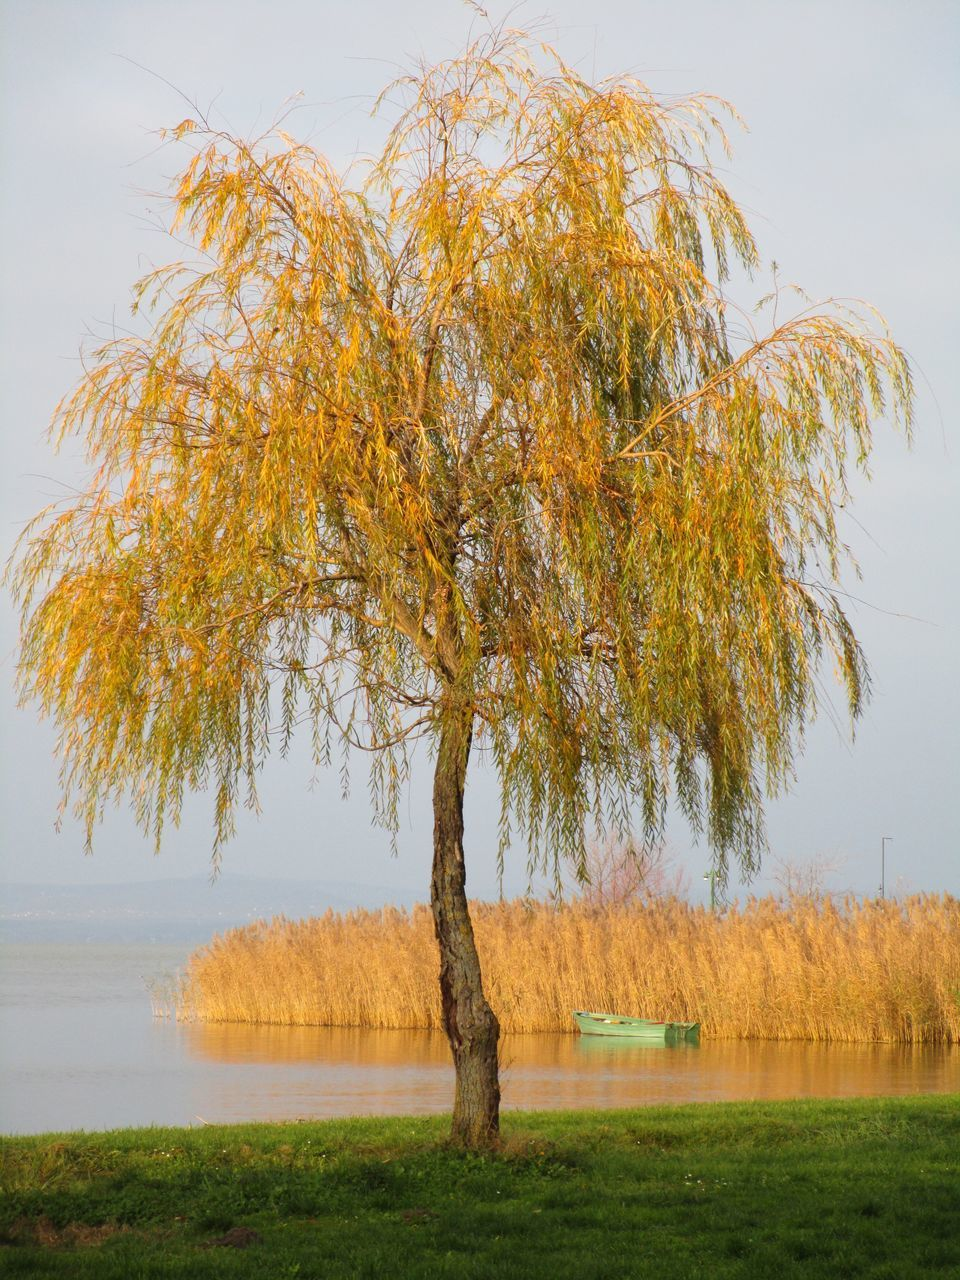 Tree Growing At Lakeshore Against Sky